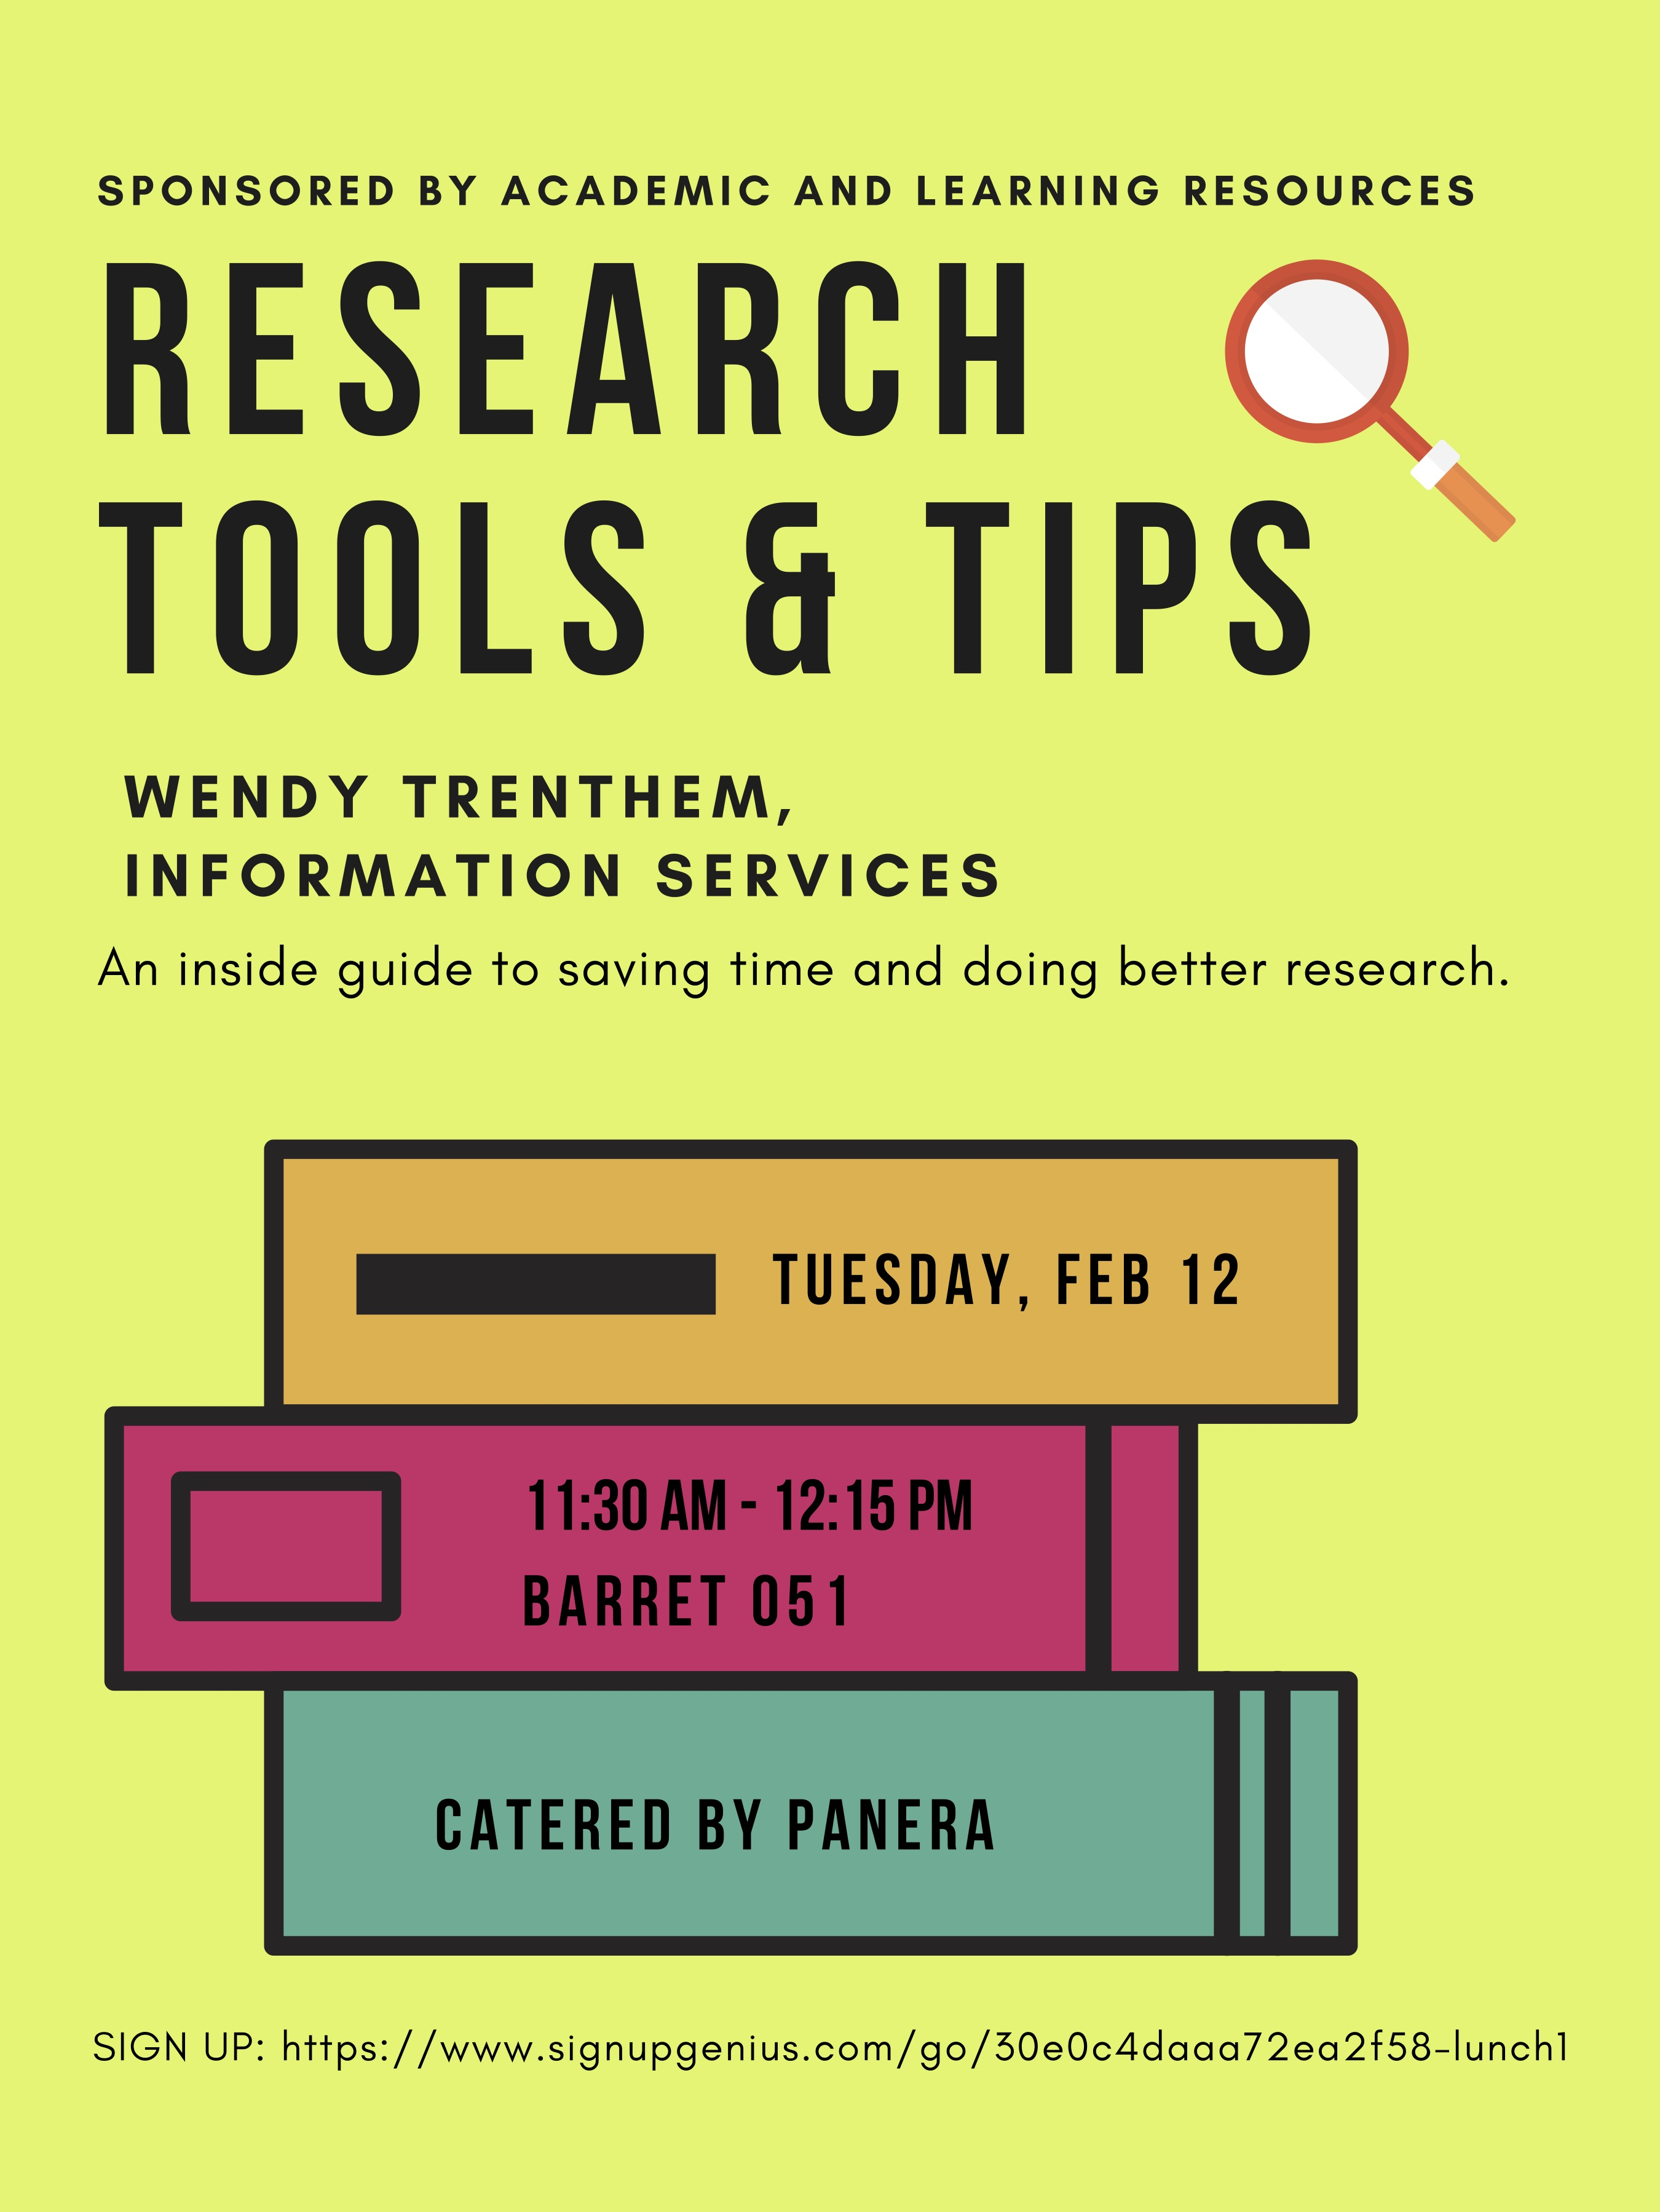 Poster that advertises Research Tools & Tips